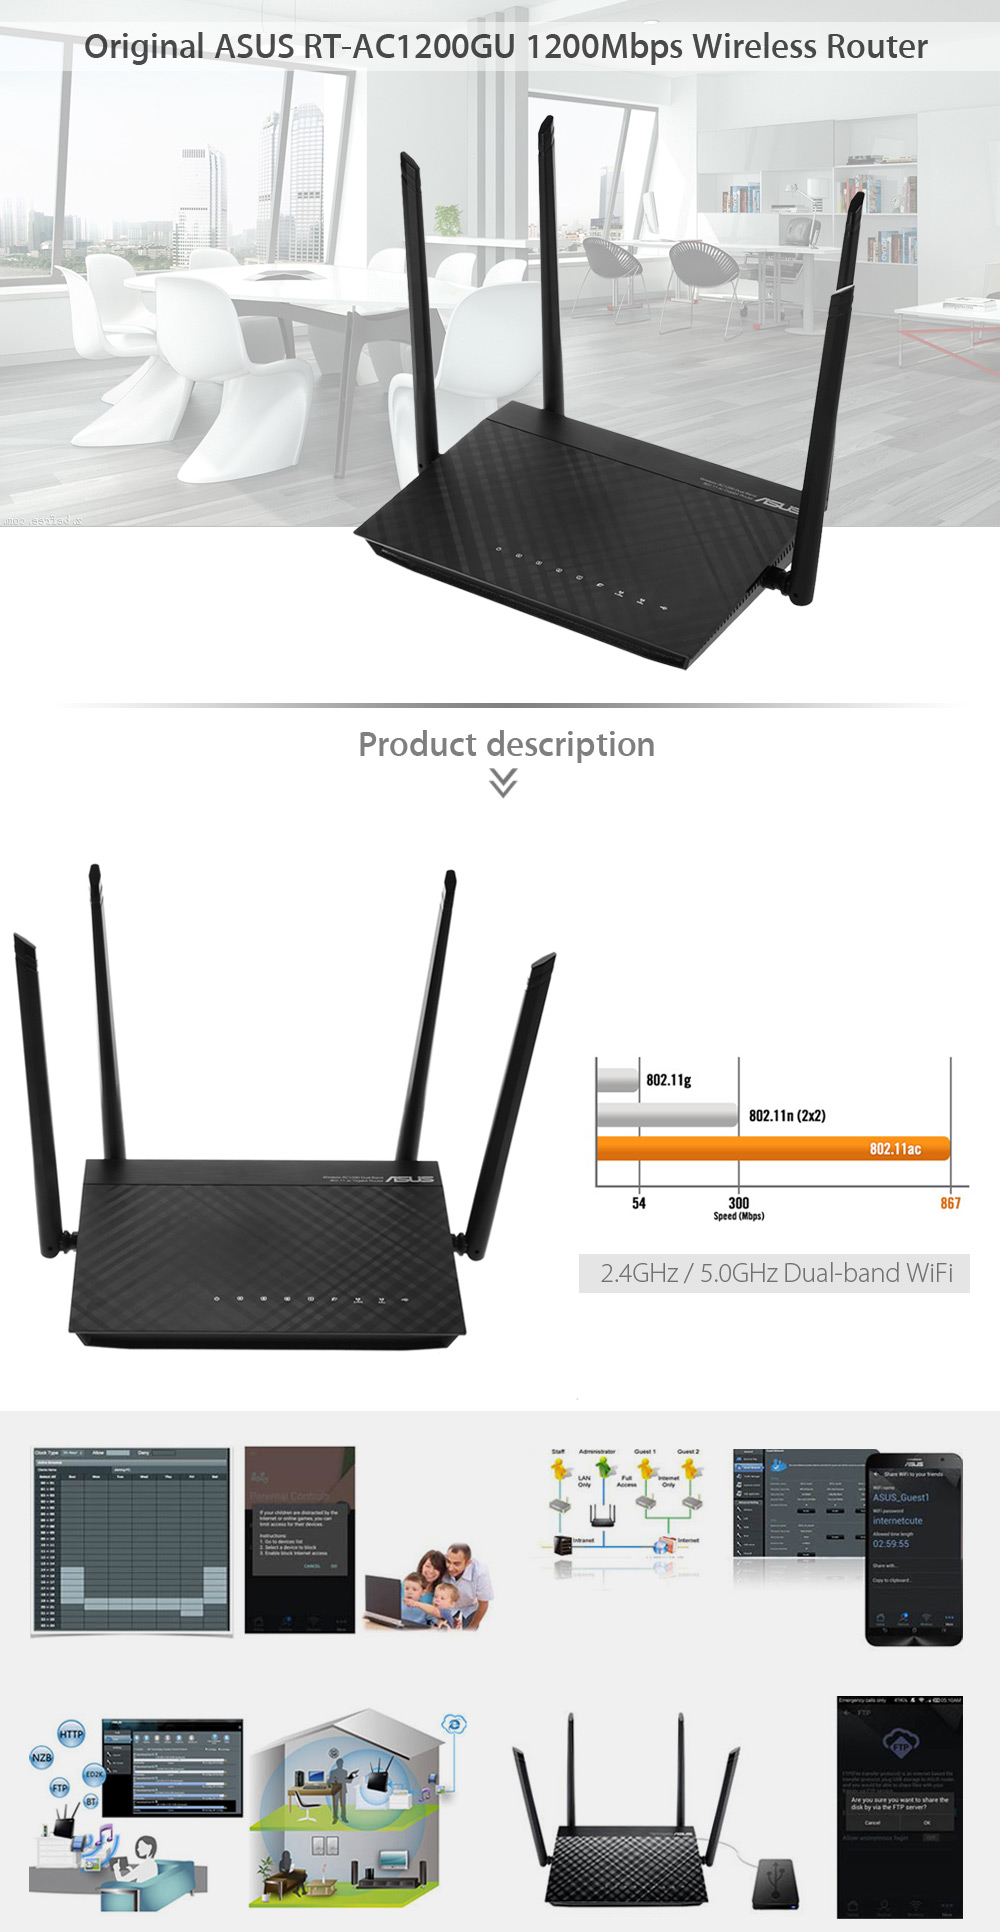 Original ASUS RT - AC1200GU 1200Mbps Wireless Router